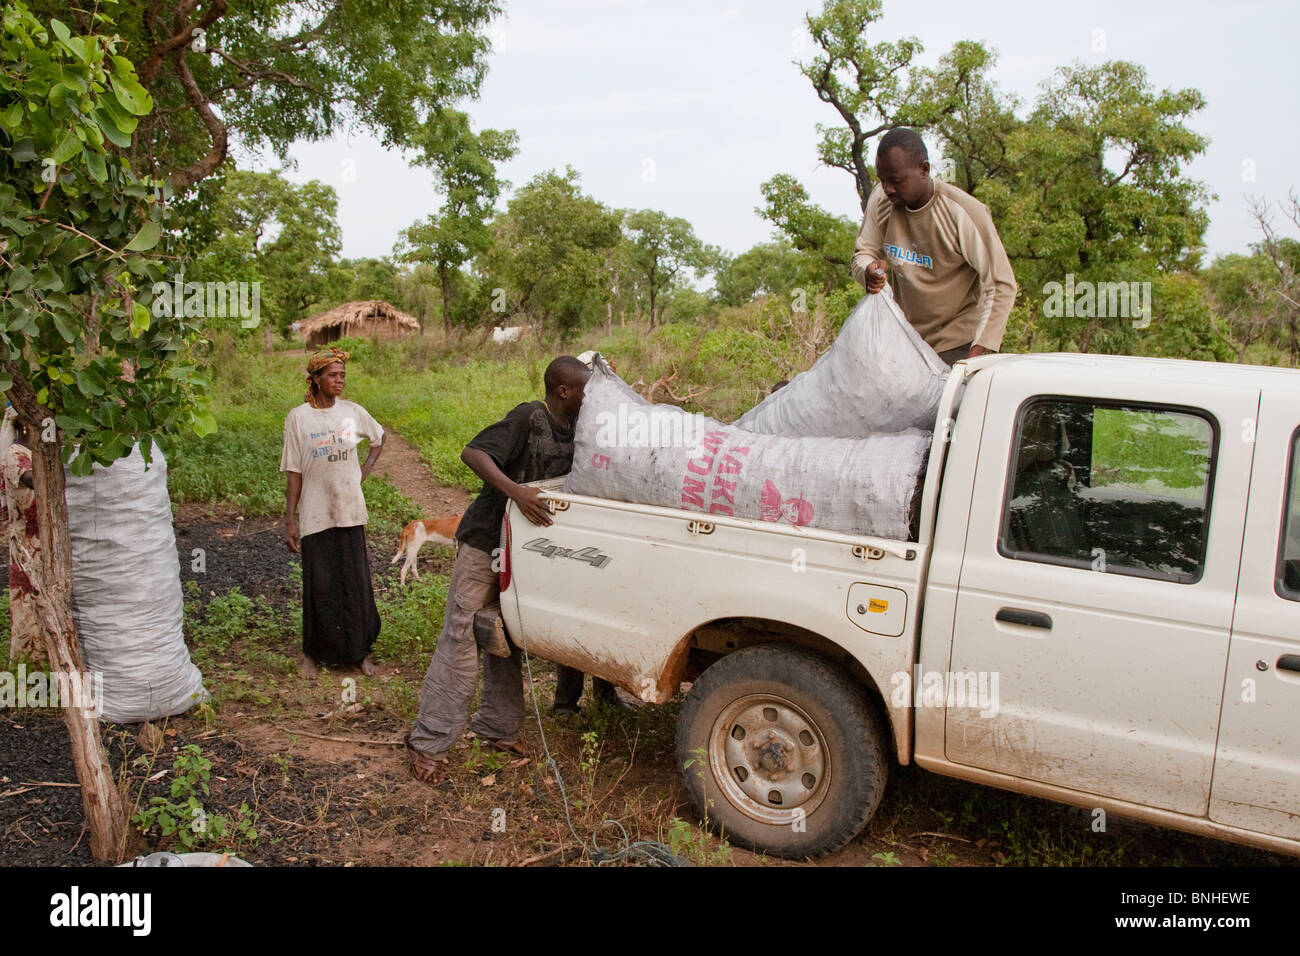 Urban Ghanaian buying charcoal for cooking in bulk from a rural charcoal burner. Stock Photo